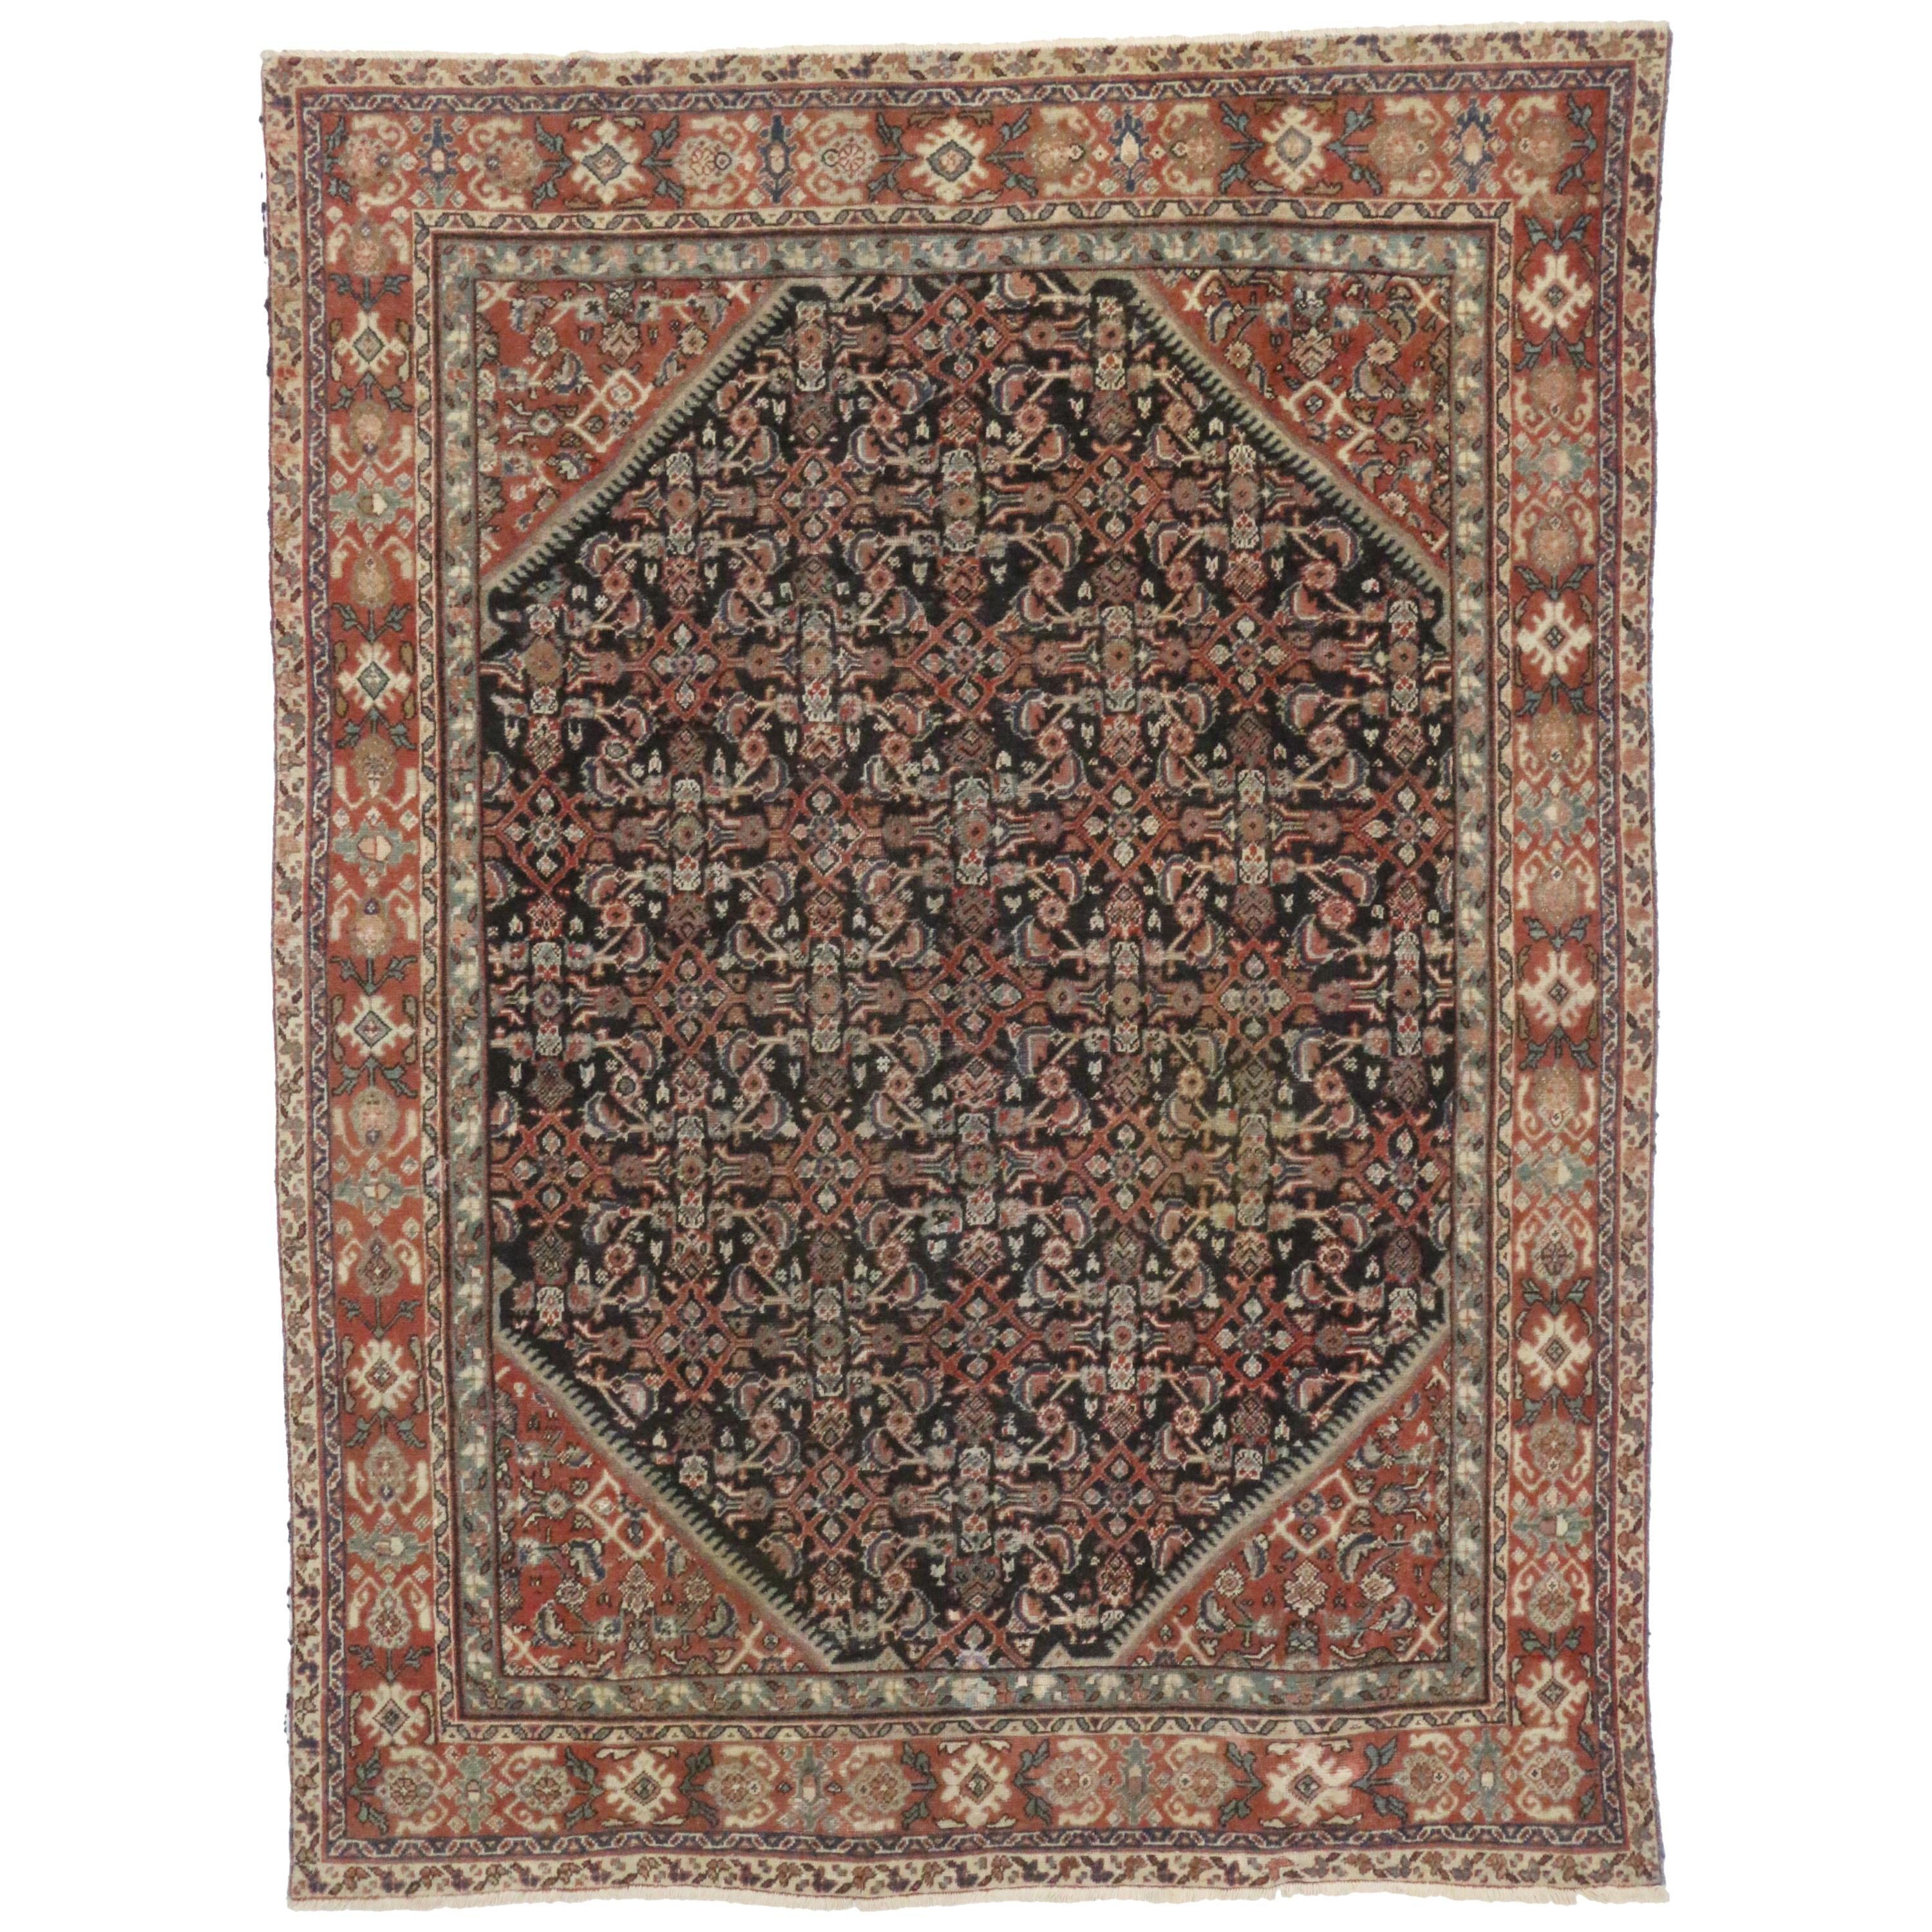 Distressed Antique Persian Mahal Area Rug with Modern Rustic English Style